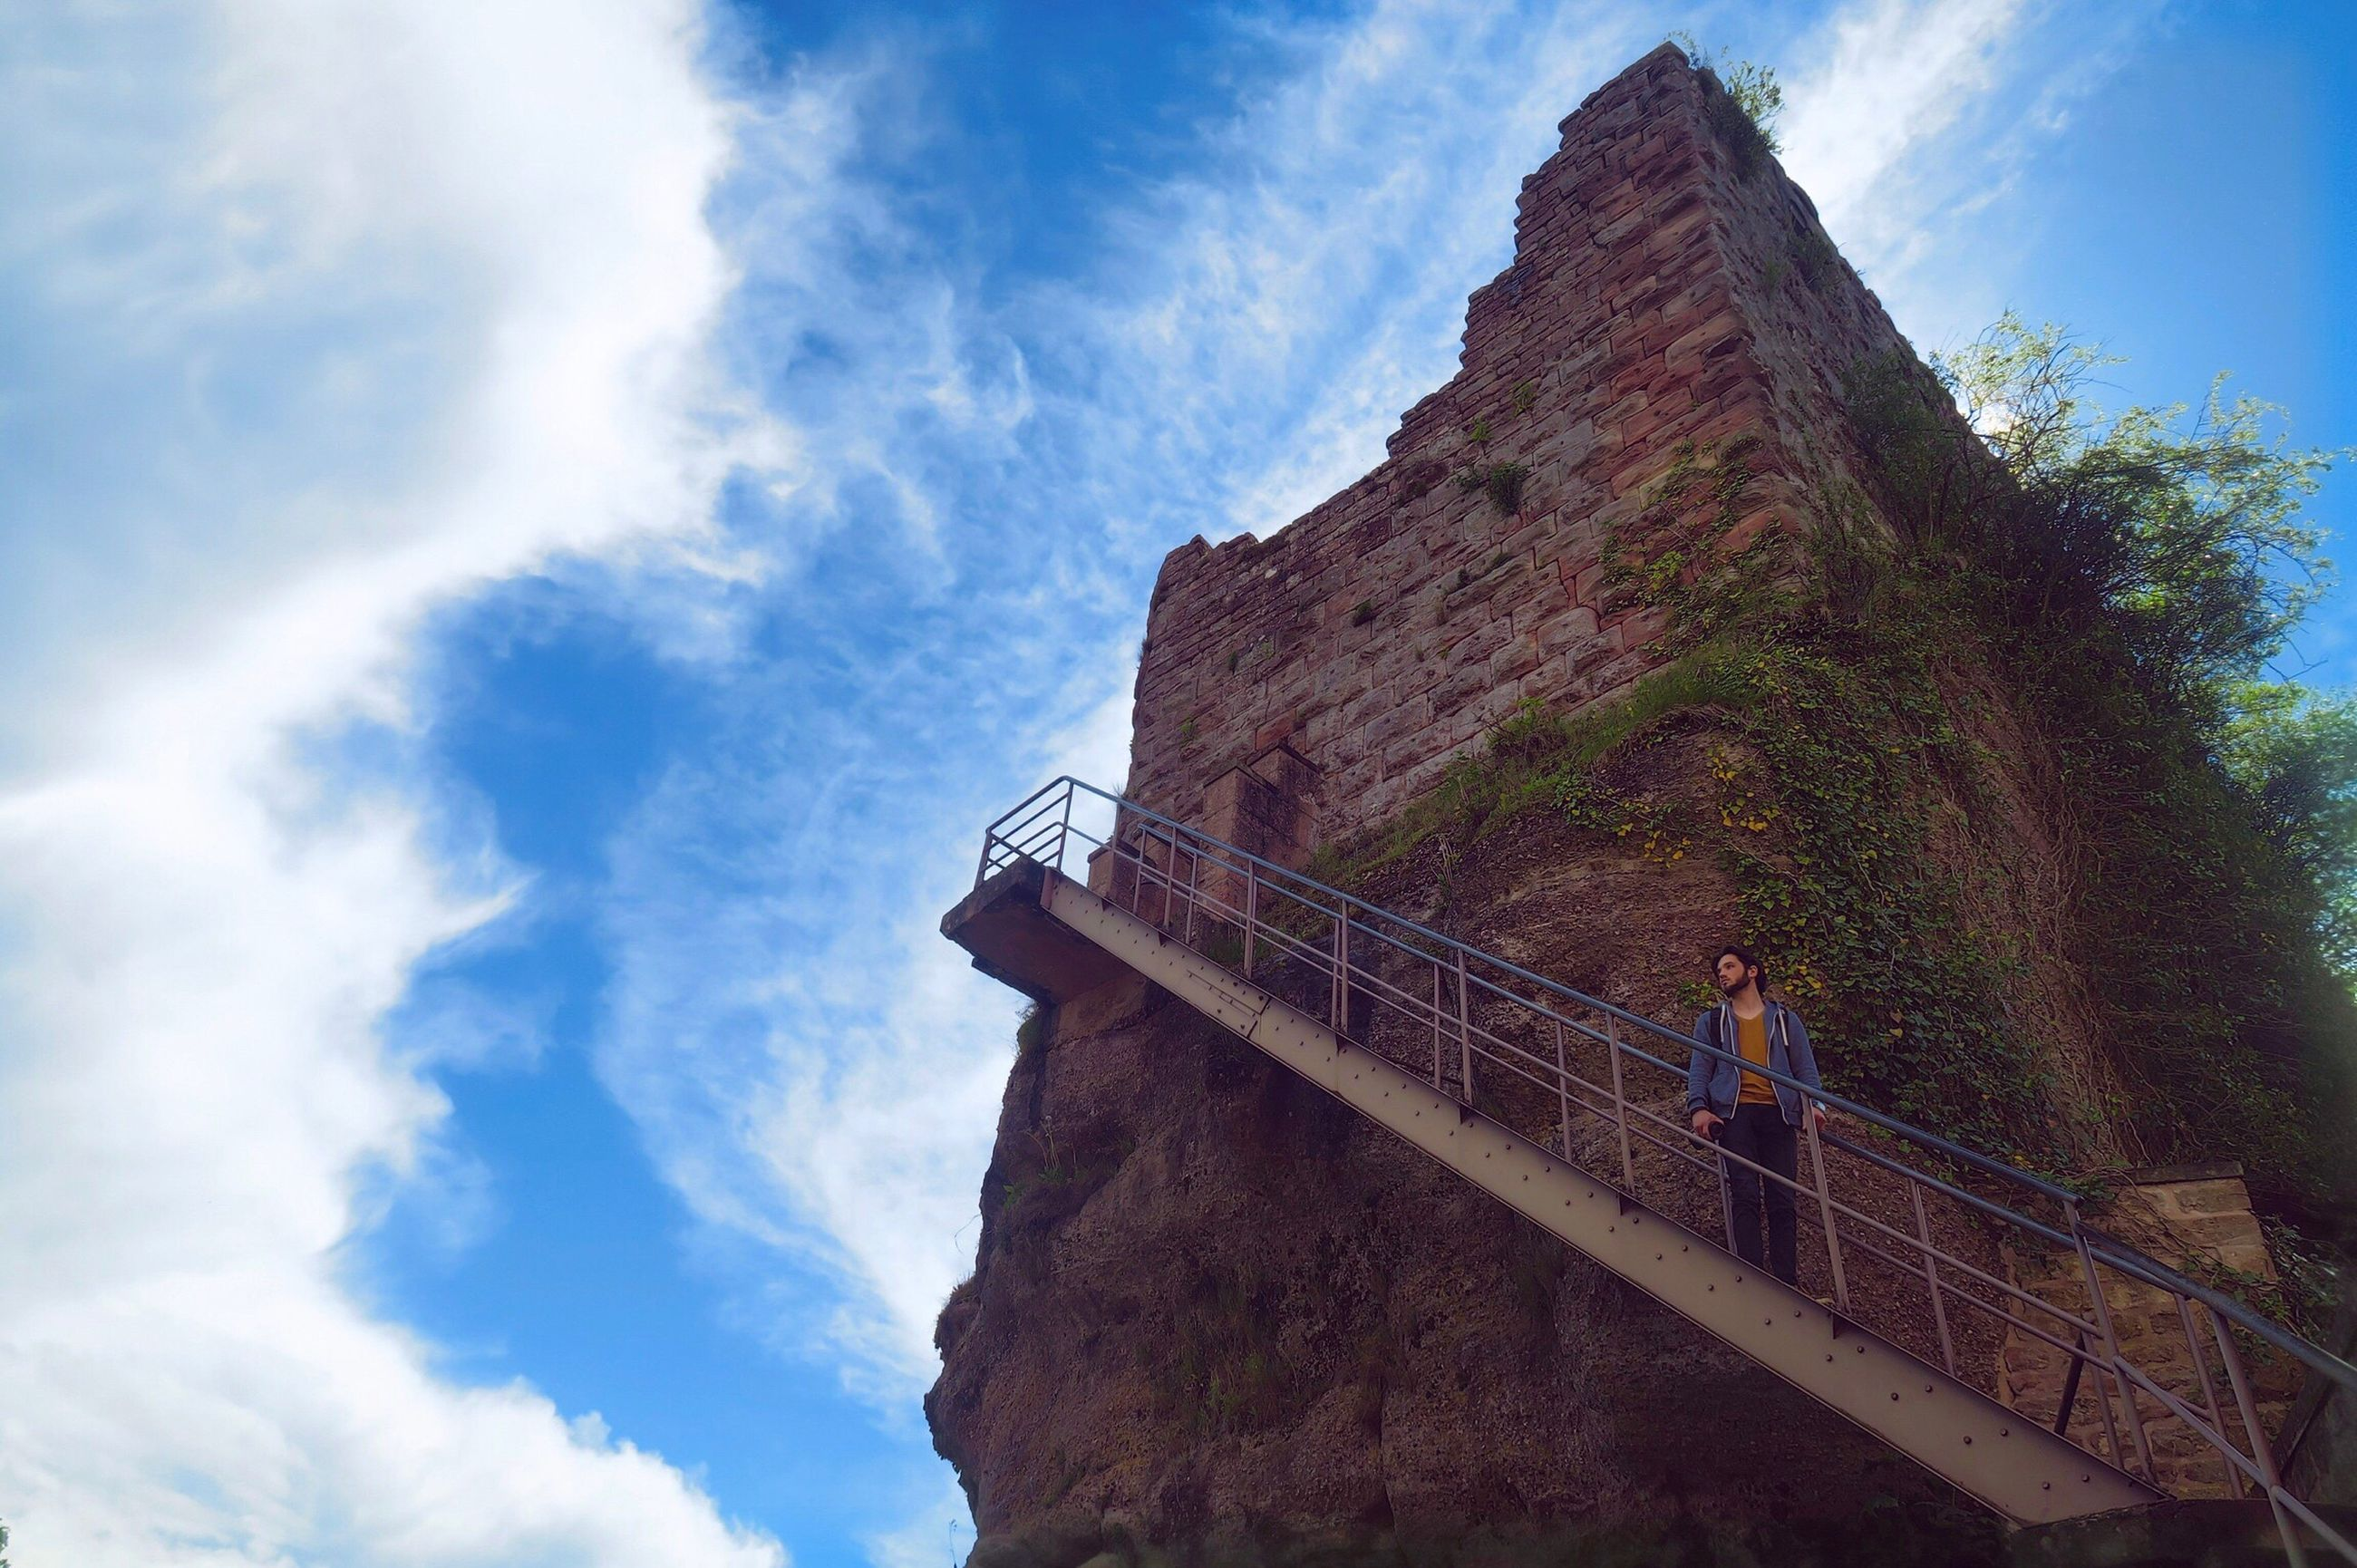 sky, low angle view, cloud - sky, real people, architecture, day, outdoors, rock - object, men, climbing, built structure, leisure activity, mountain, nature, lifestyles, women, one person, scenics, adventure, beauty in nature, building exterior, young adult, people